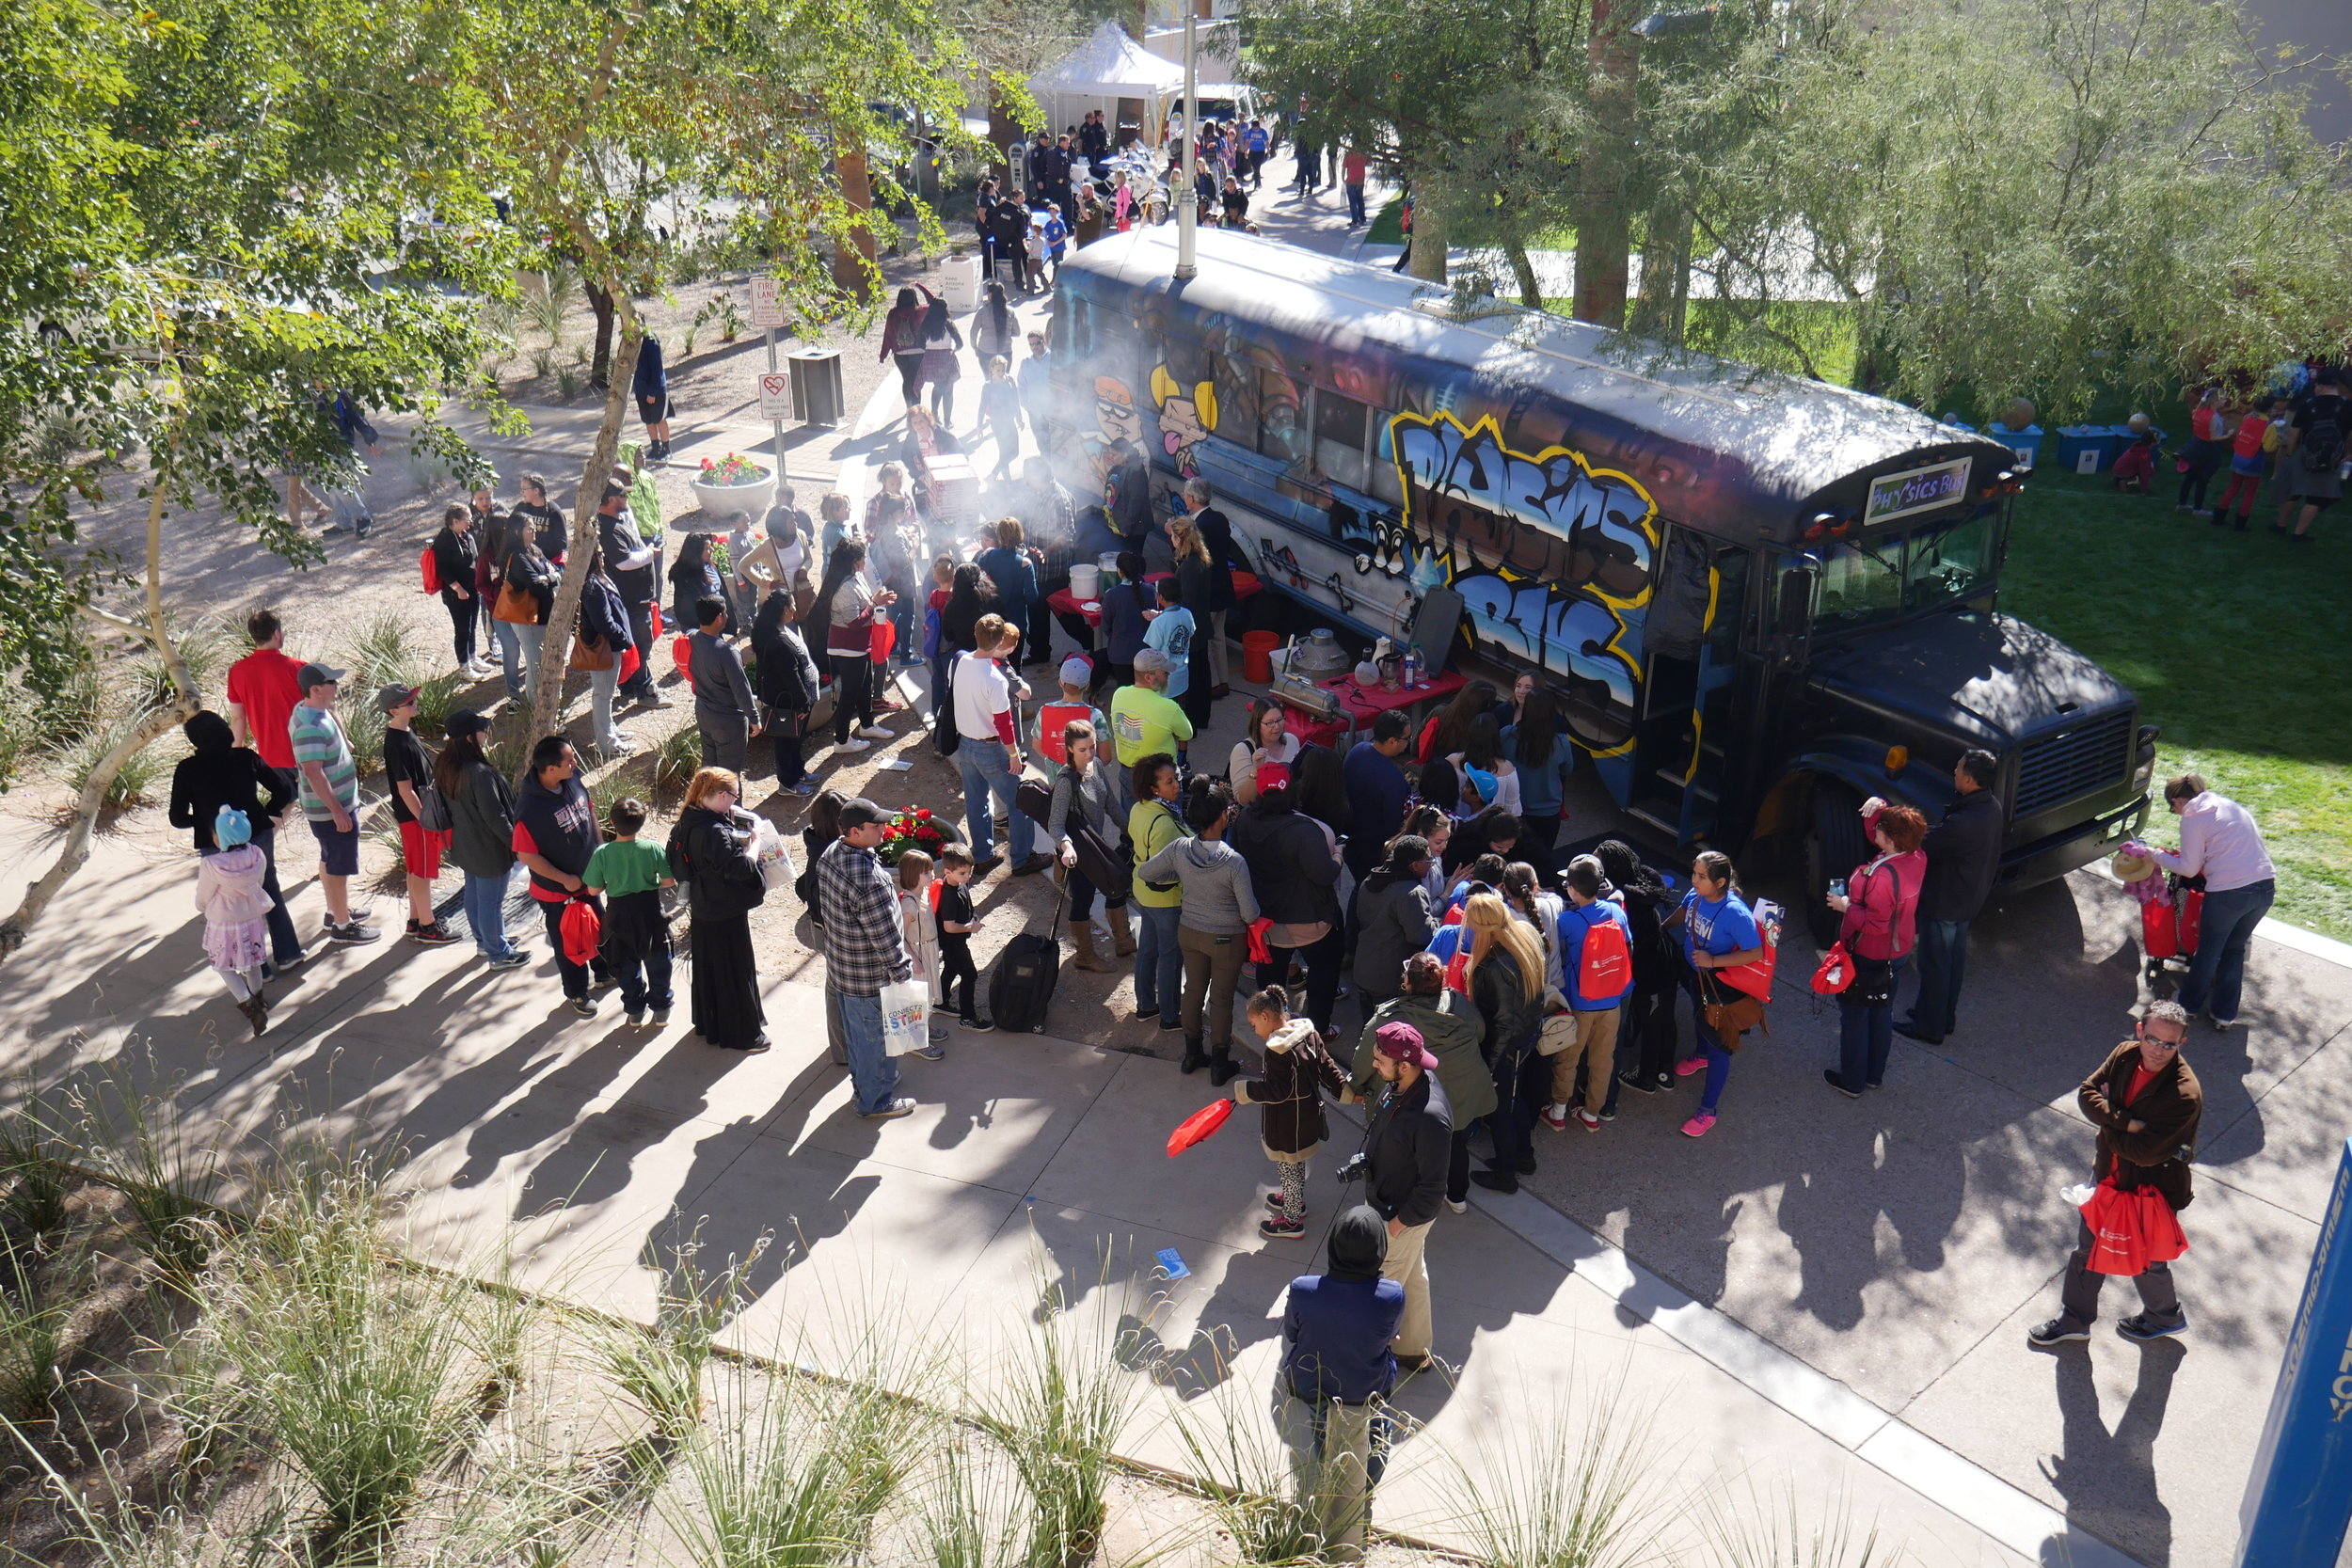 Over 5,000 people are estimated to have attended the 2017 Connect2STEM event in Downtown Phoenix. (Nicholas Serpa/DD)